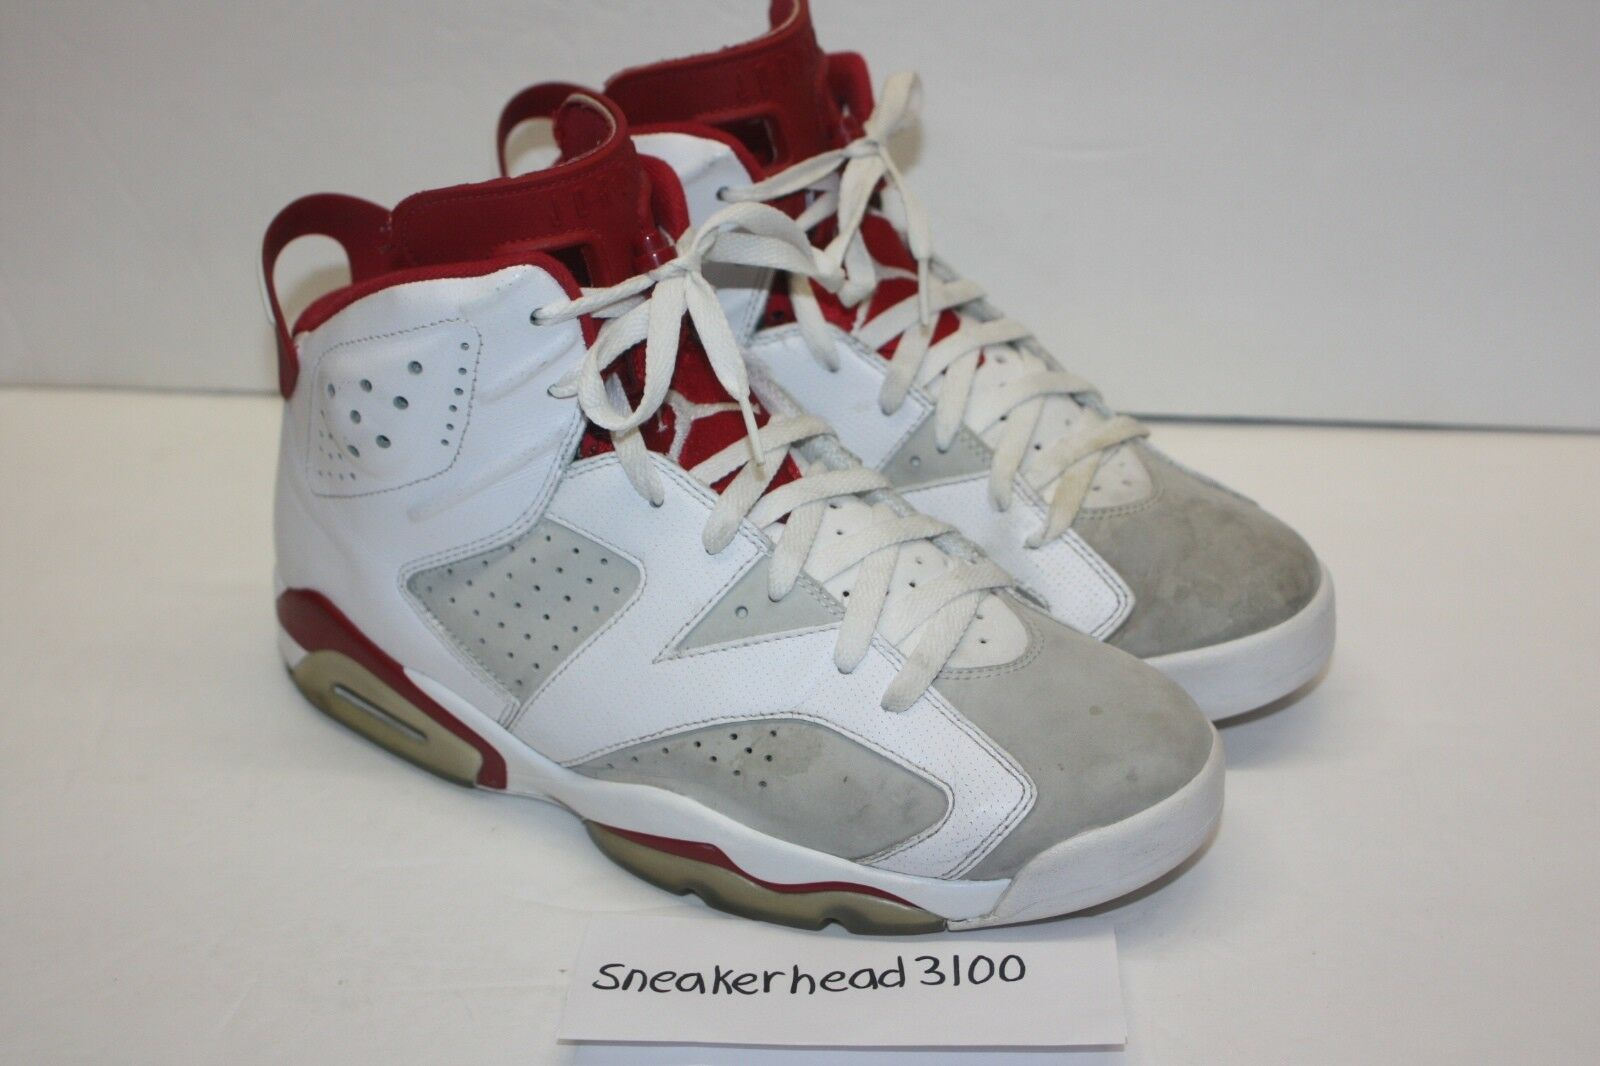 Nike Air Jordan 6 Retro Alternate White Gym Red Platinum 384664-113 Size 11